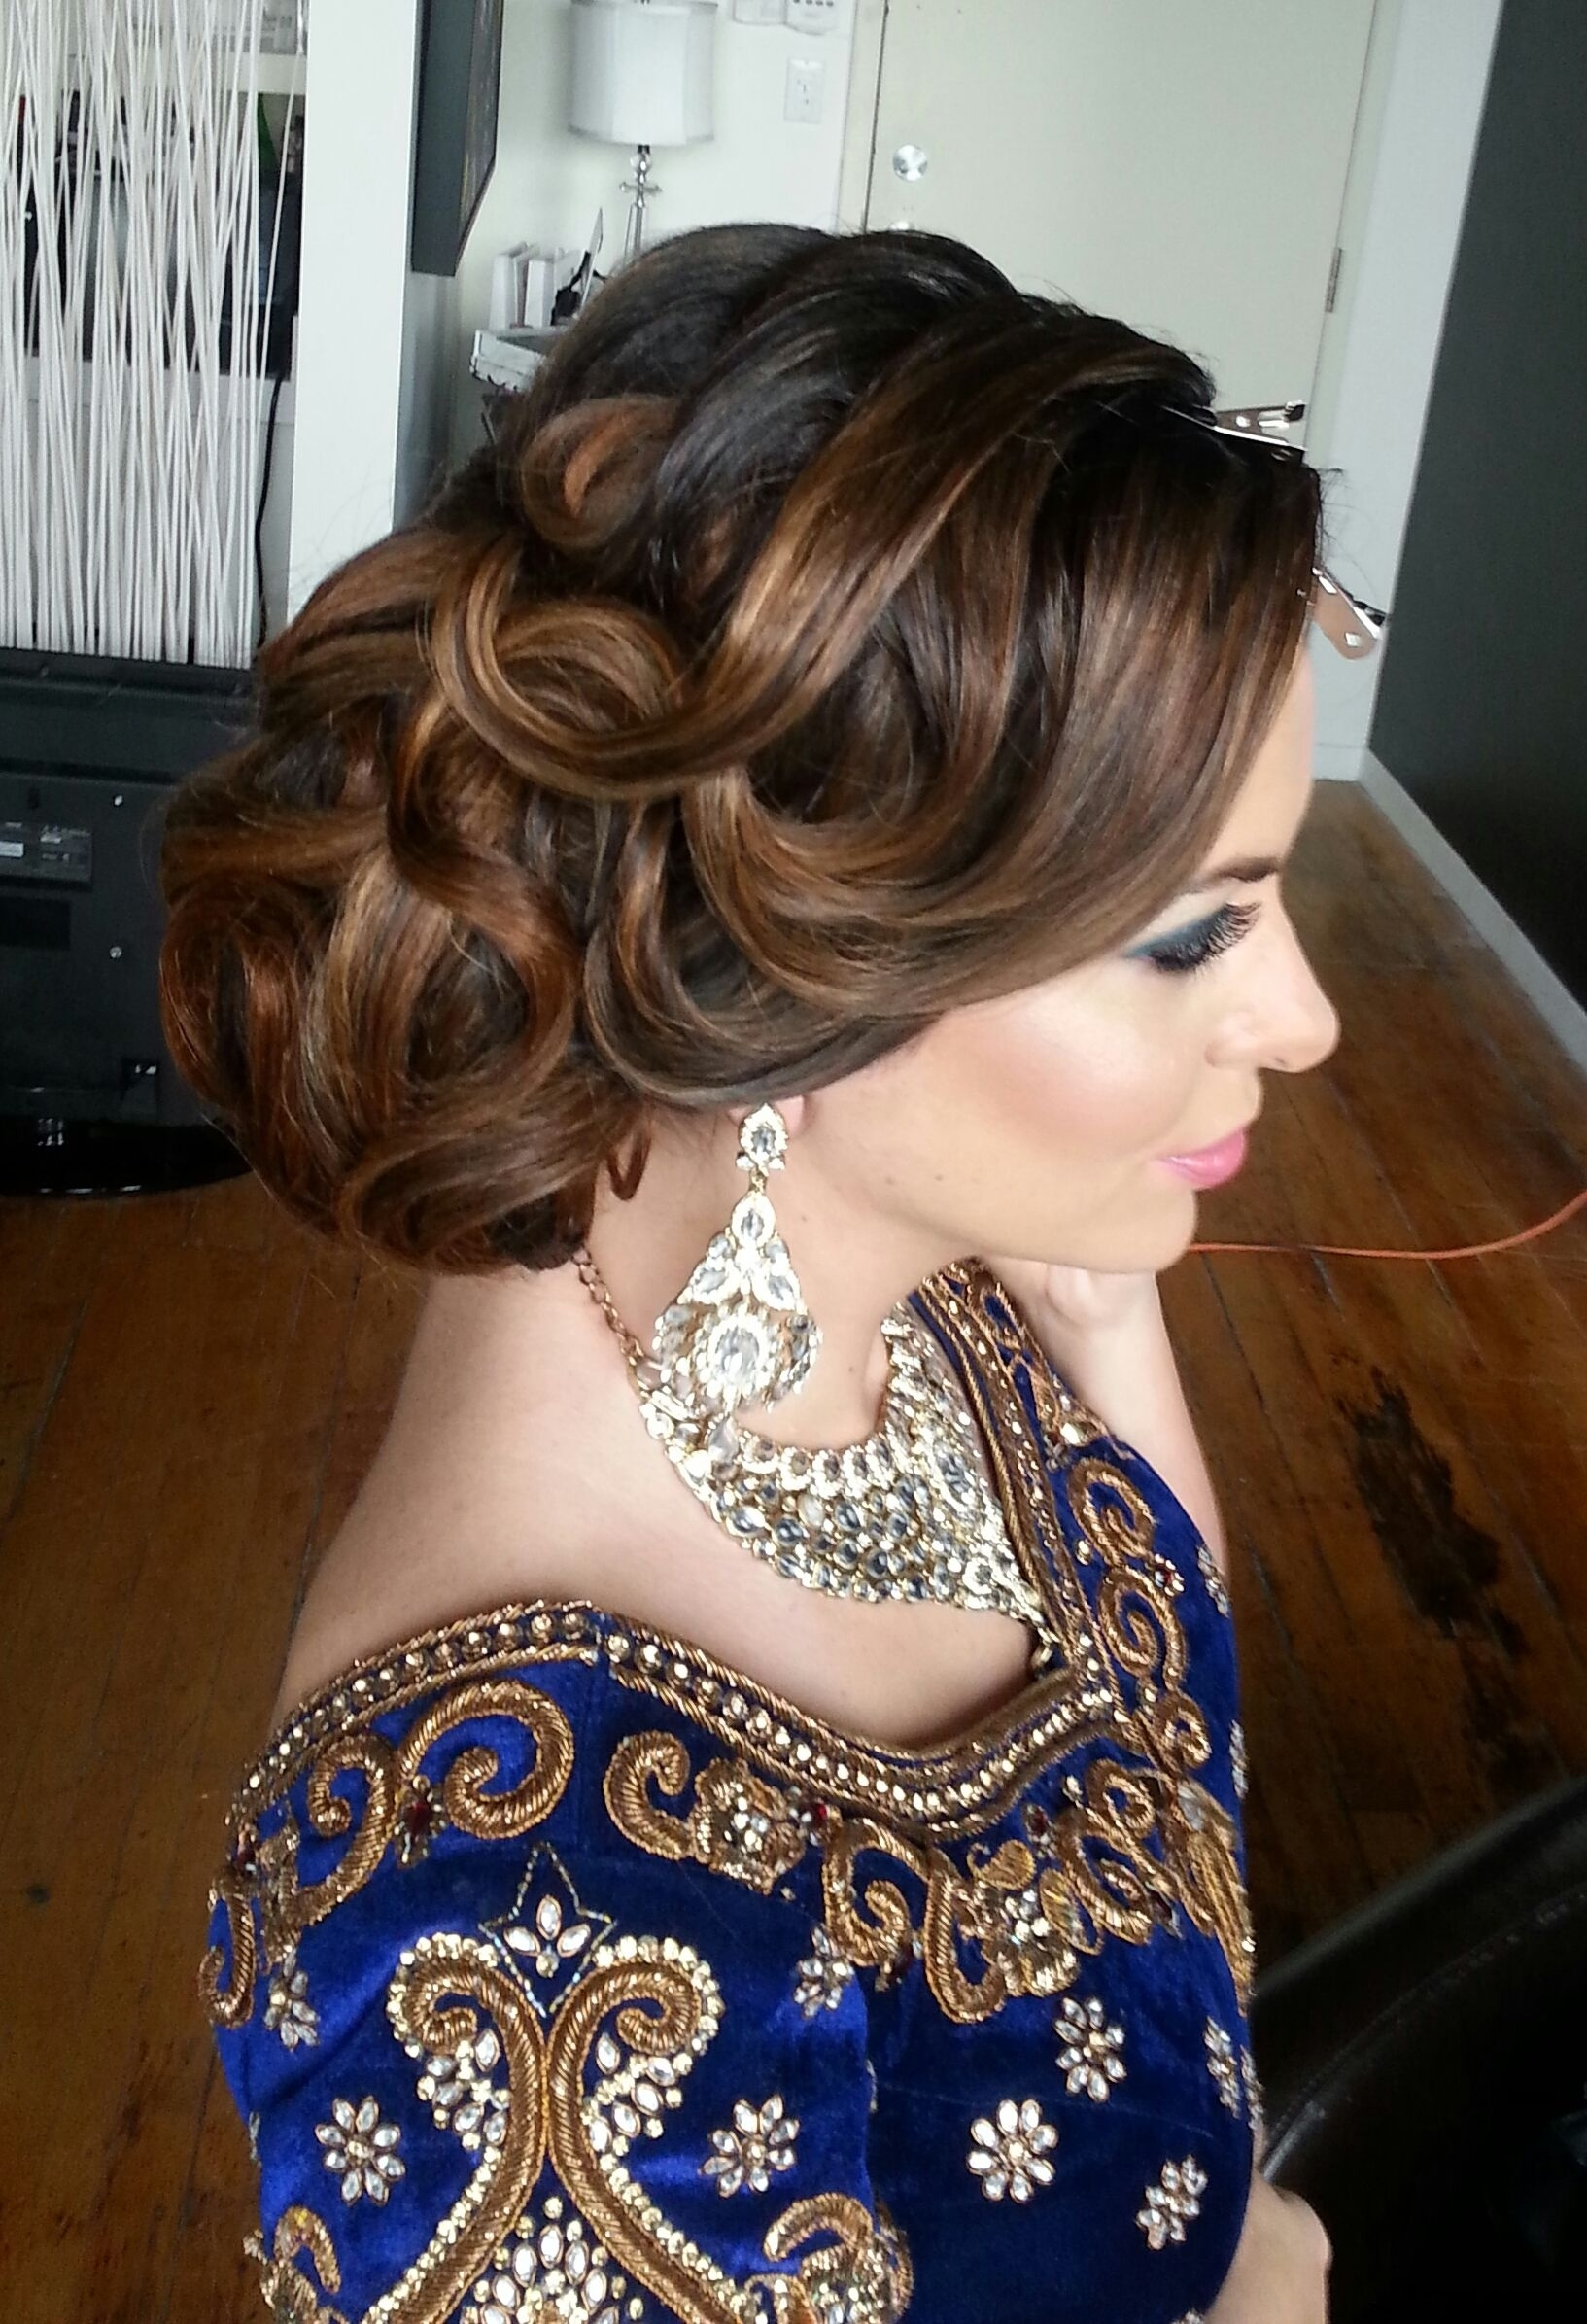 16 Glamorous Indian Wedding Hairstyles   Hairstyles   Wedding Guest with regard to Superb Asian Indian Wedding Hairstyles